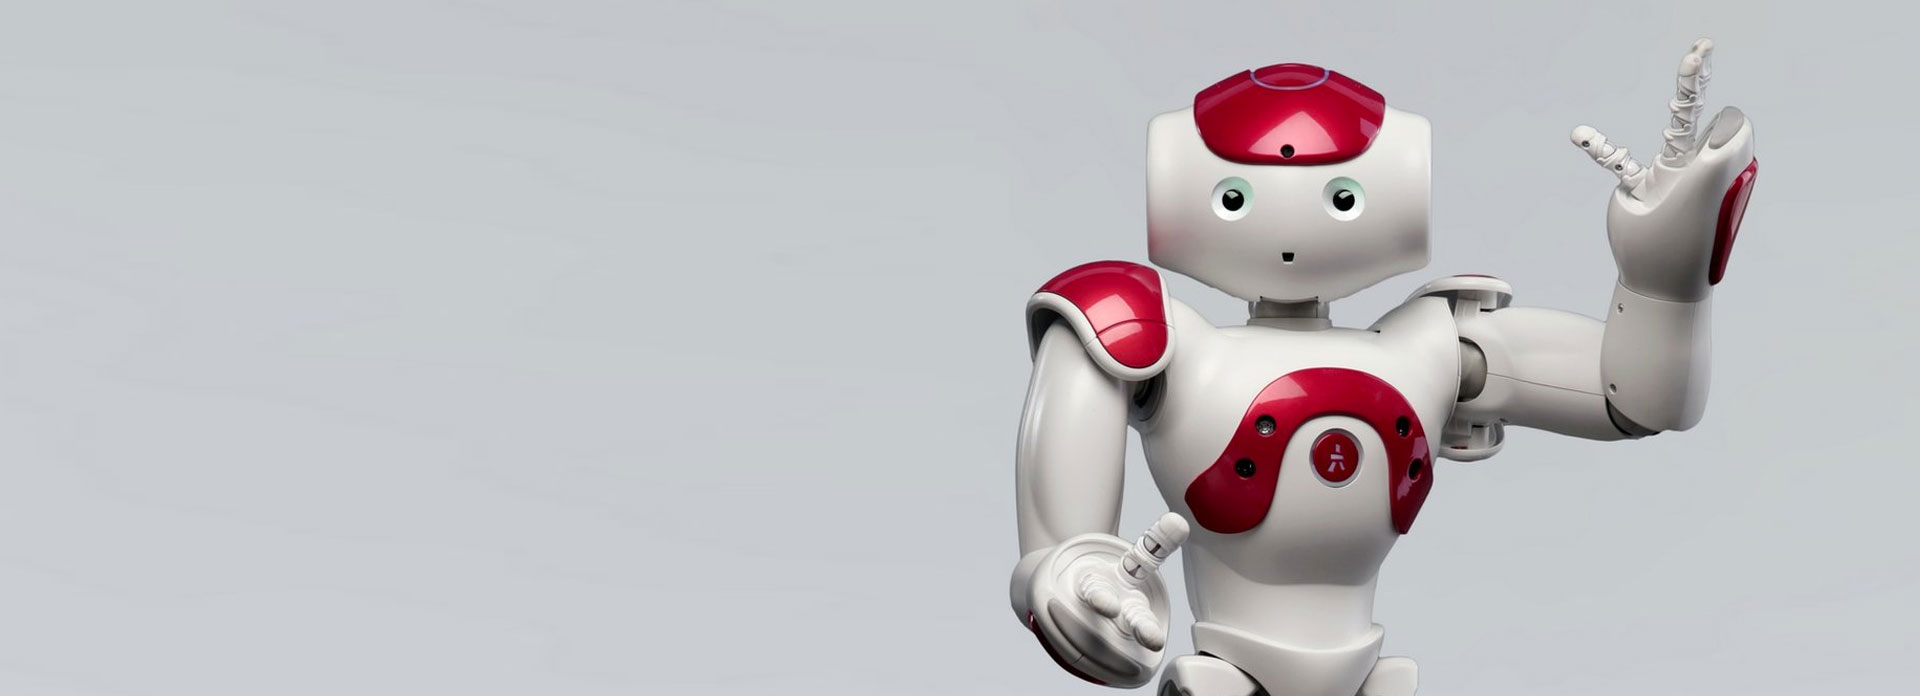 Could a robot help preschool kids learn better?